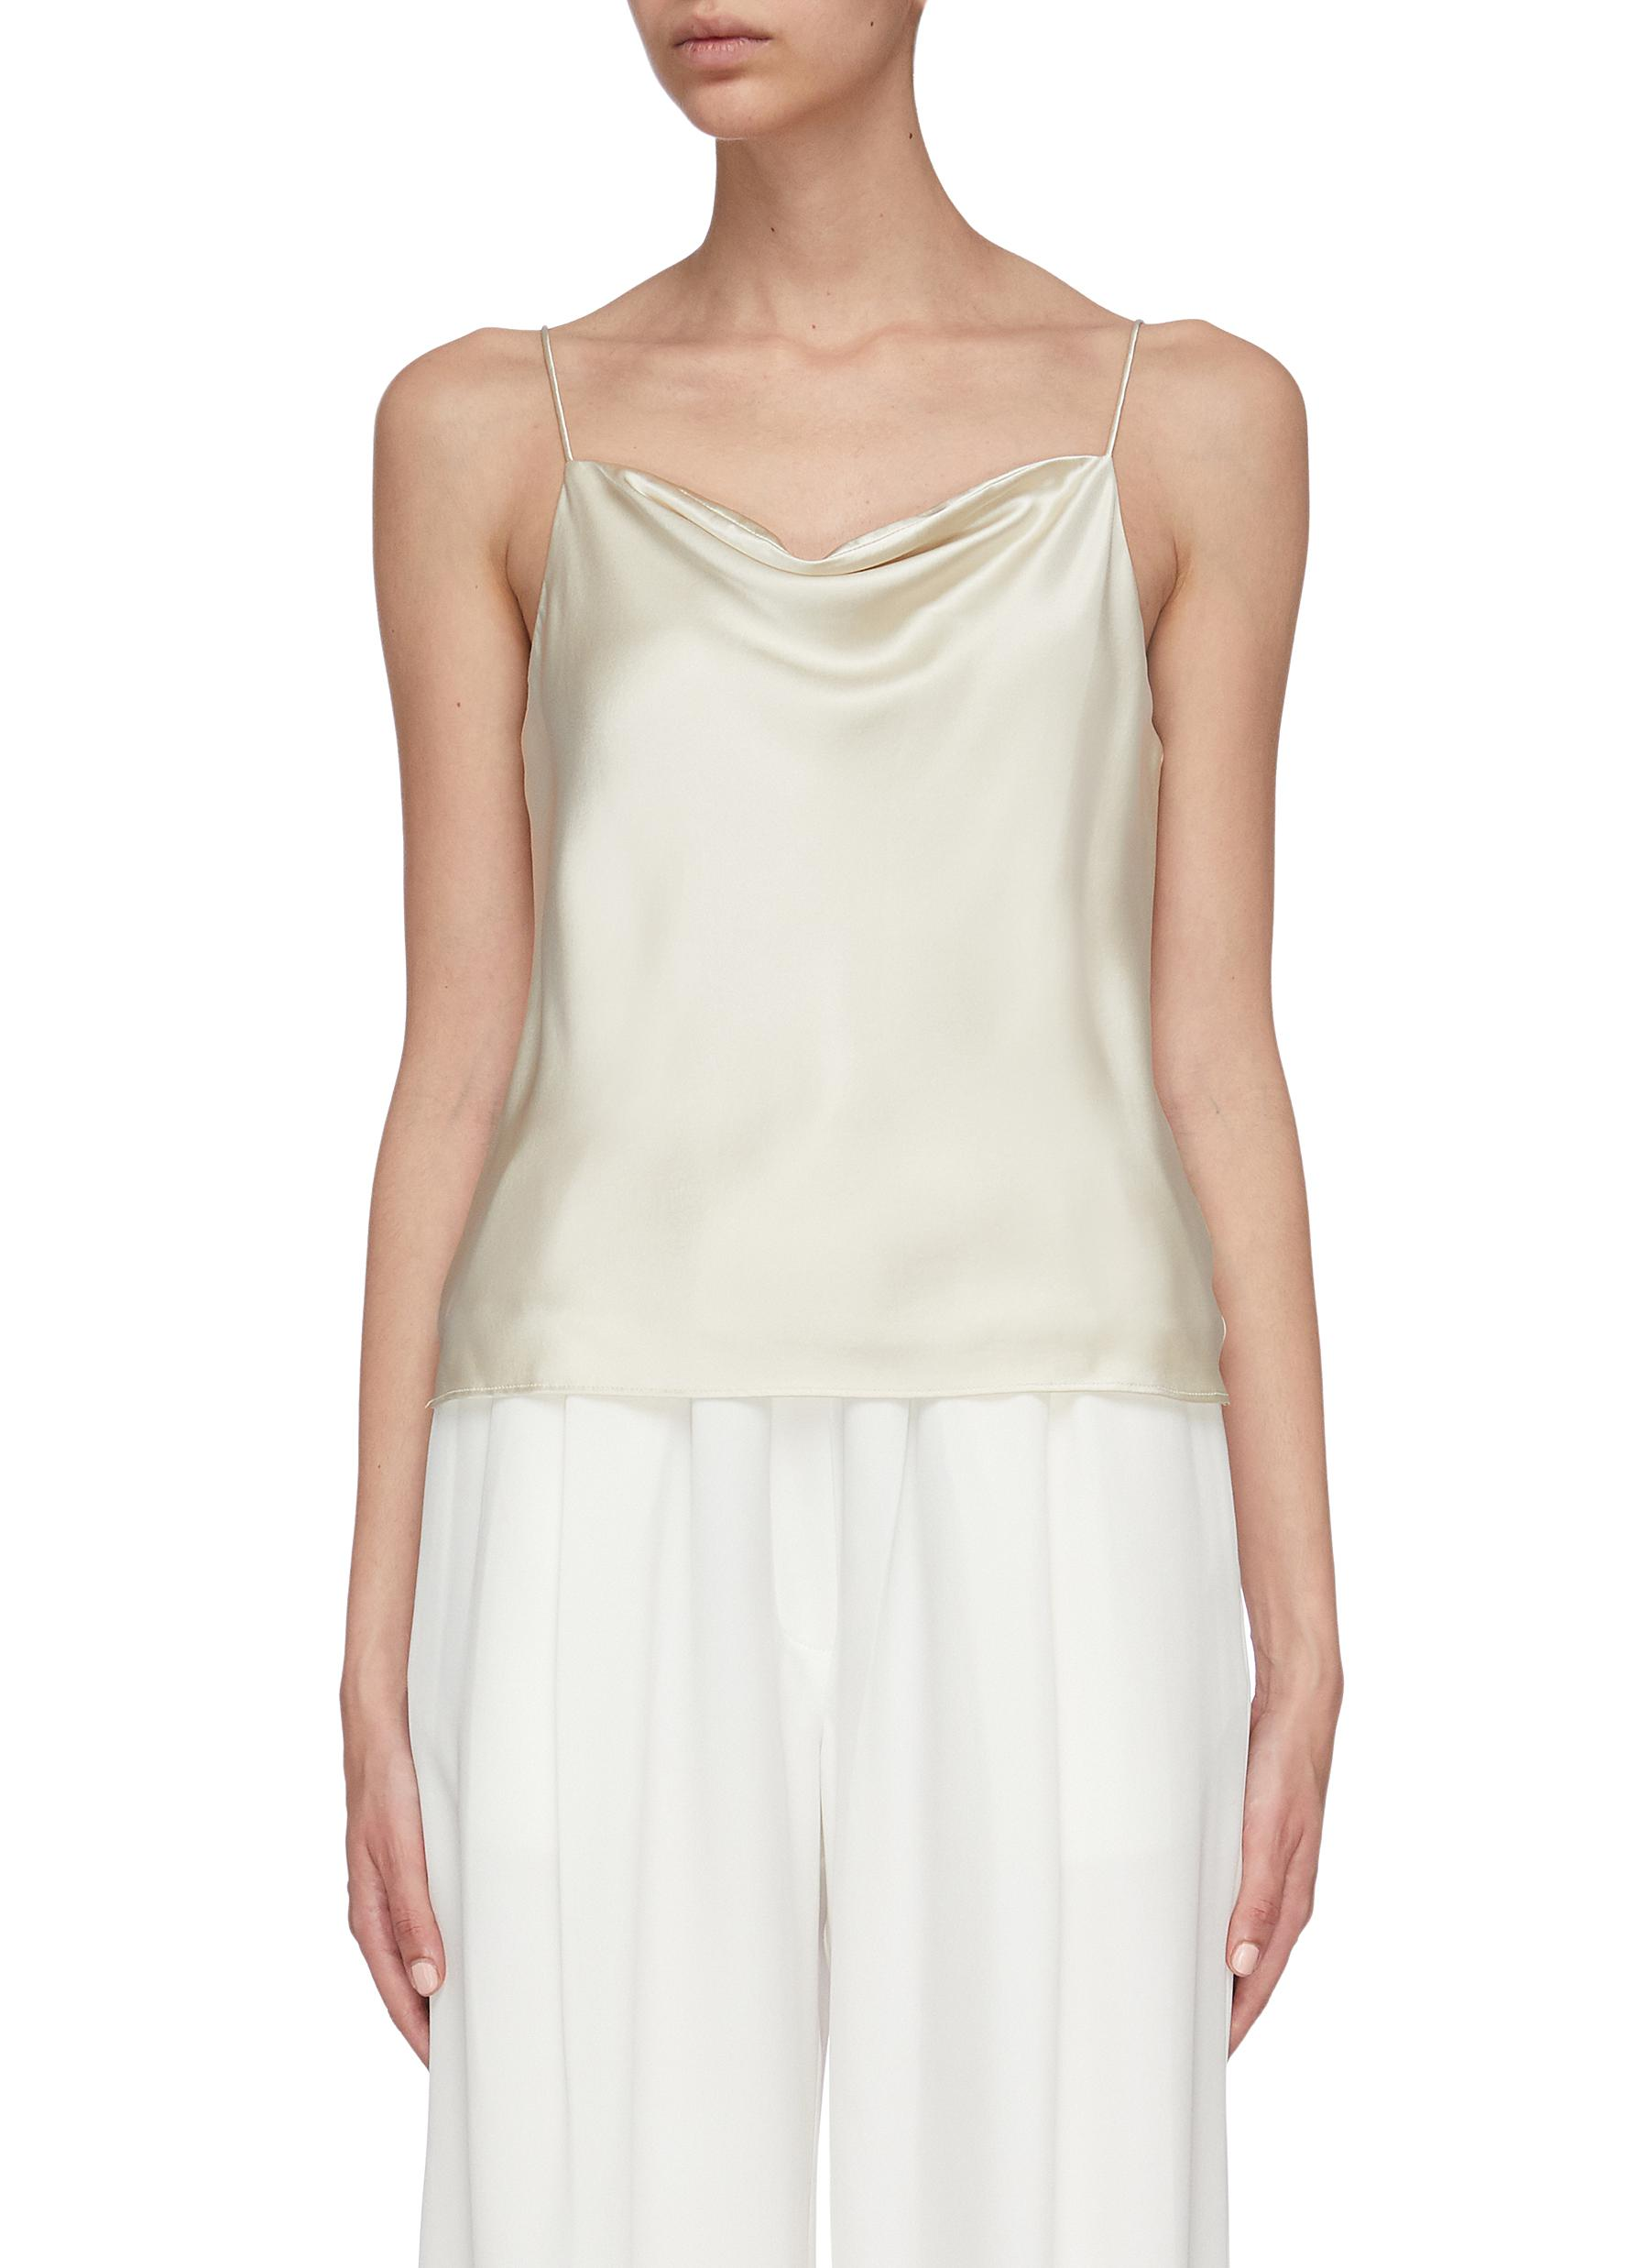 Silk satin camisole top by Equil